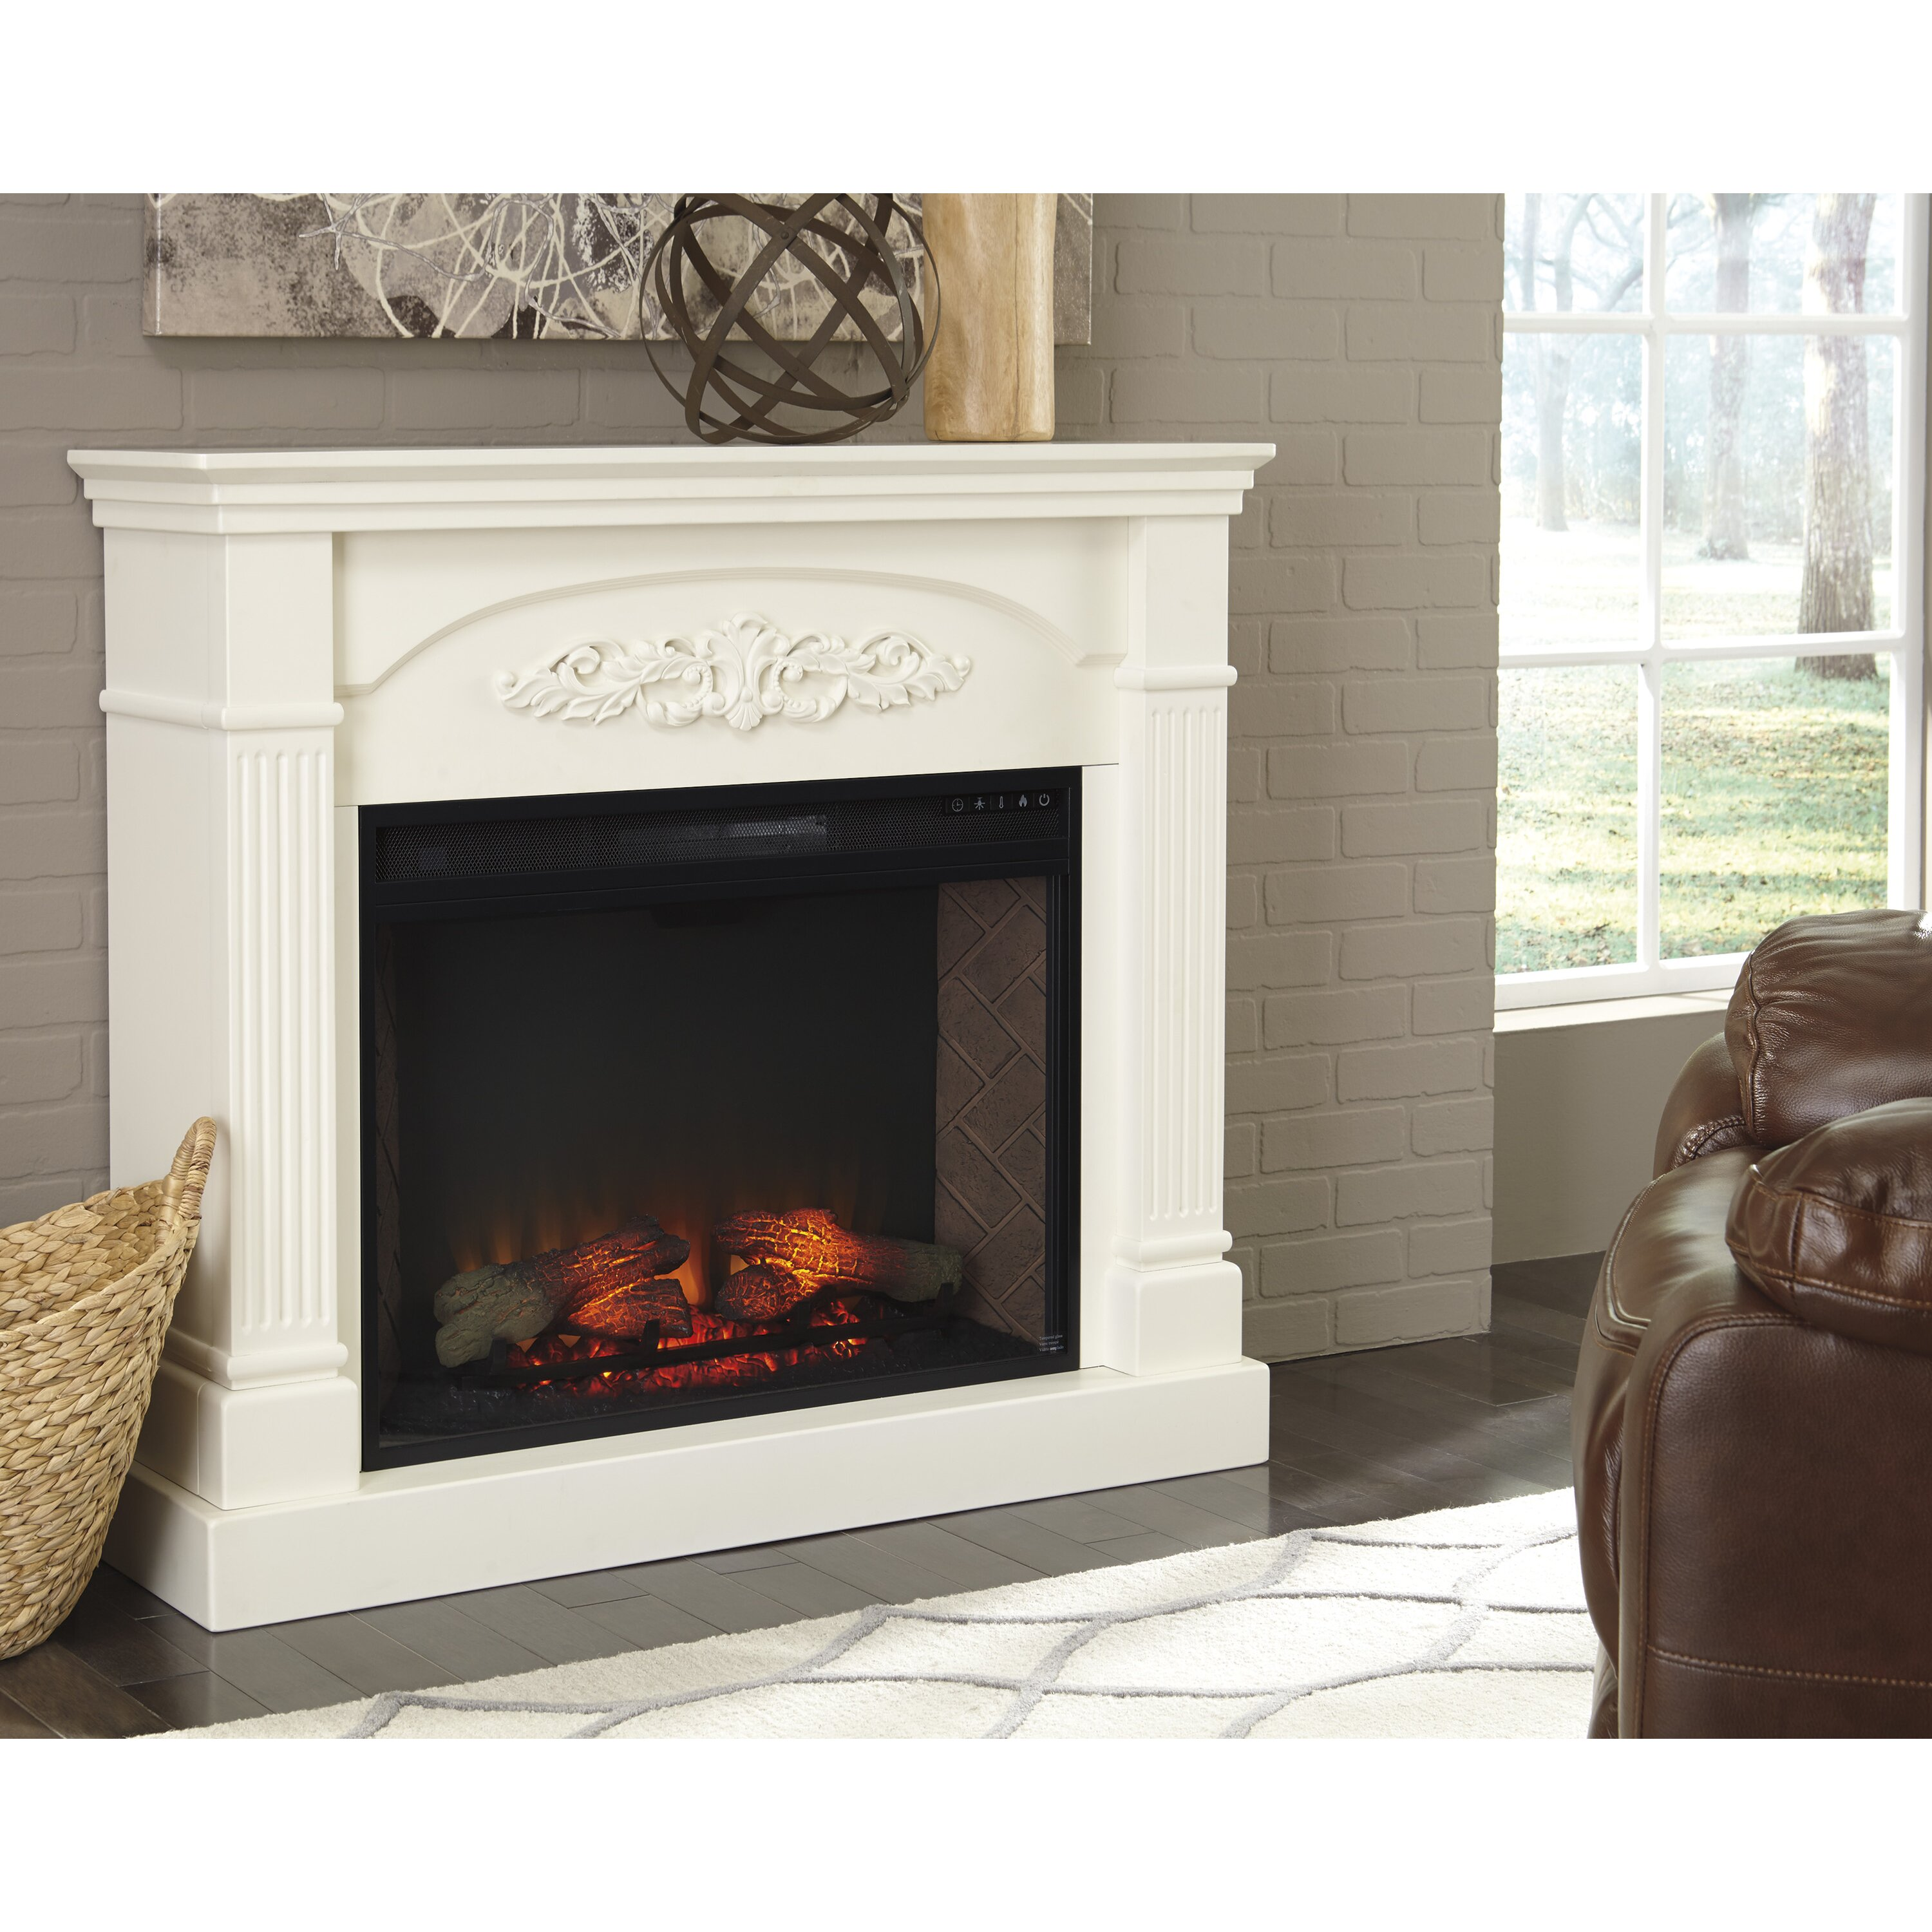 Signature Design by Ashley Electric Fireplace